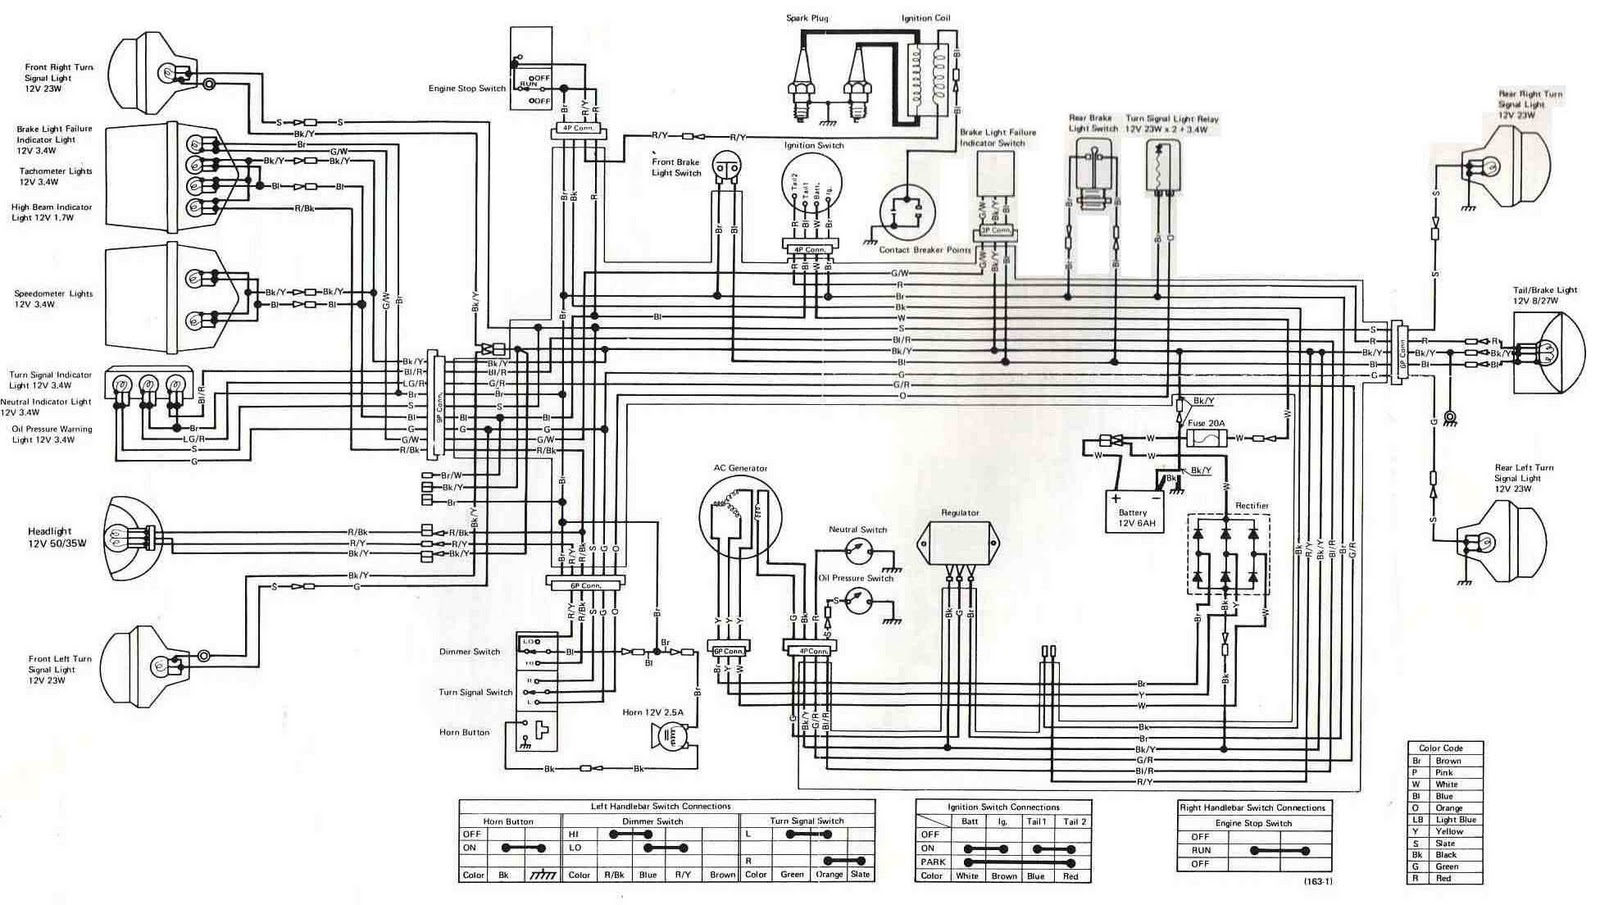 kz400 simple wiring diagram simple wiring diagram 1975 honda cb360 kawasaki kz400 1975 electrical wiring diagram | all about ...